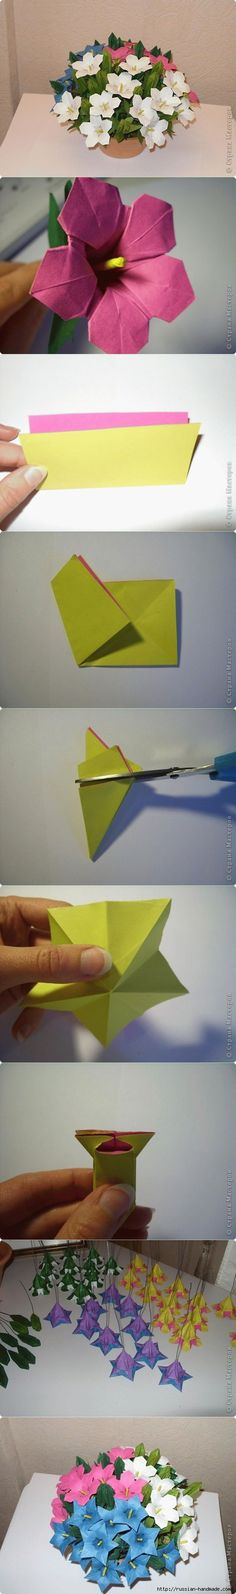 DIY Beautiful Paper Origami Lily Flower Bouquet - Diy Home Crafts Origami Diy, Origami And Kirigami, Origami Paper Art, How To Make Origami, Useful Origami, Origami Tutorial, Diy Paper, Dollar Origami, Origami Ball